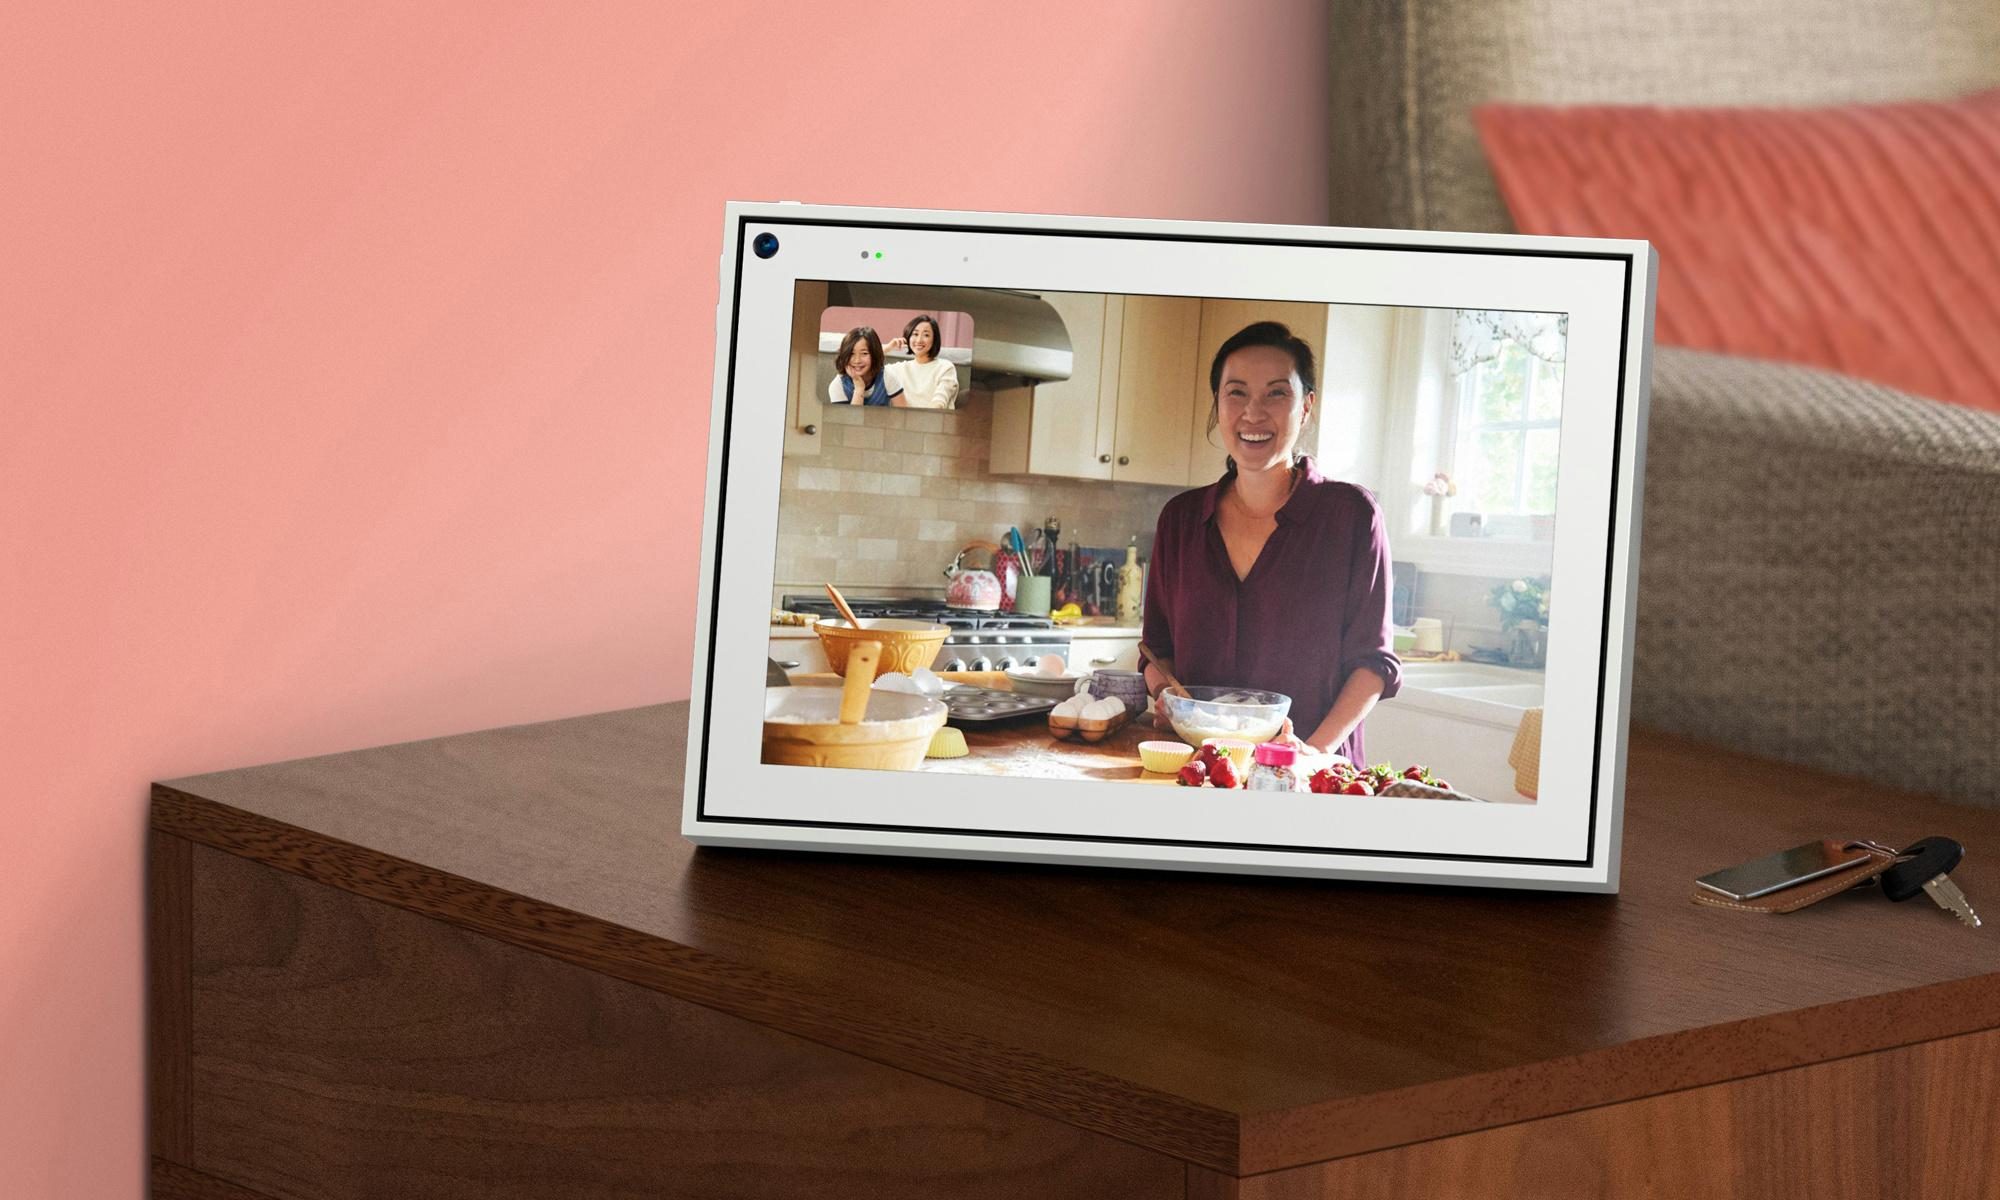 Facebook to launch new Portal smart displays in Europe